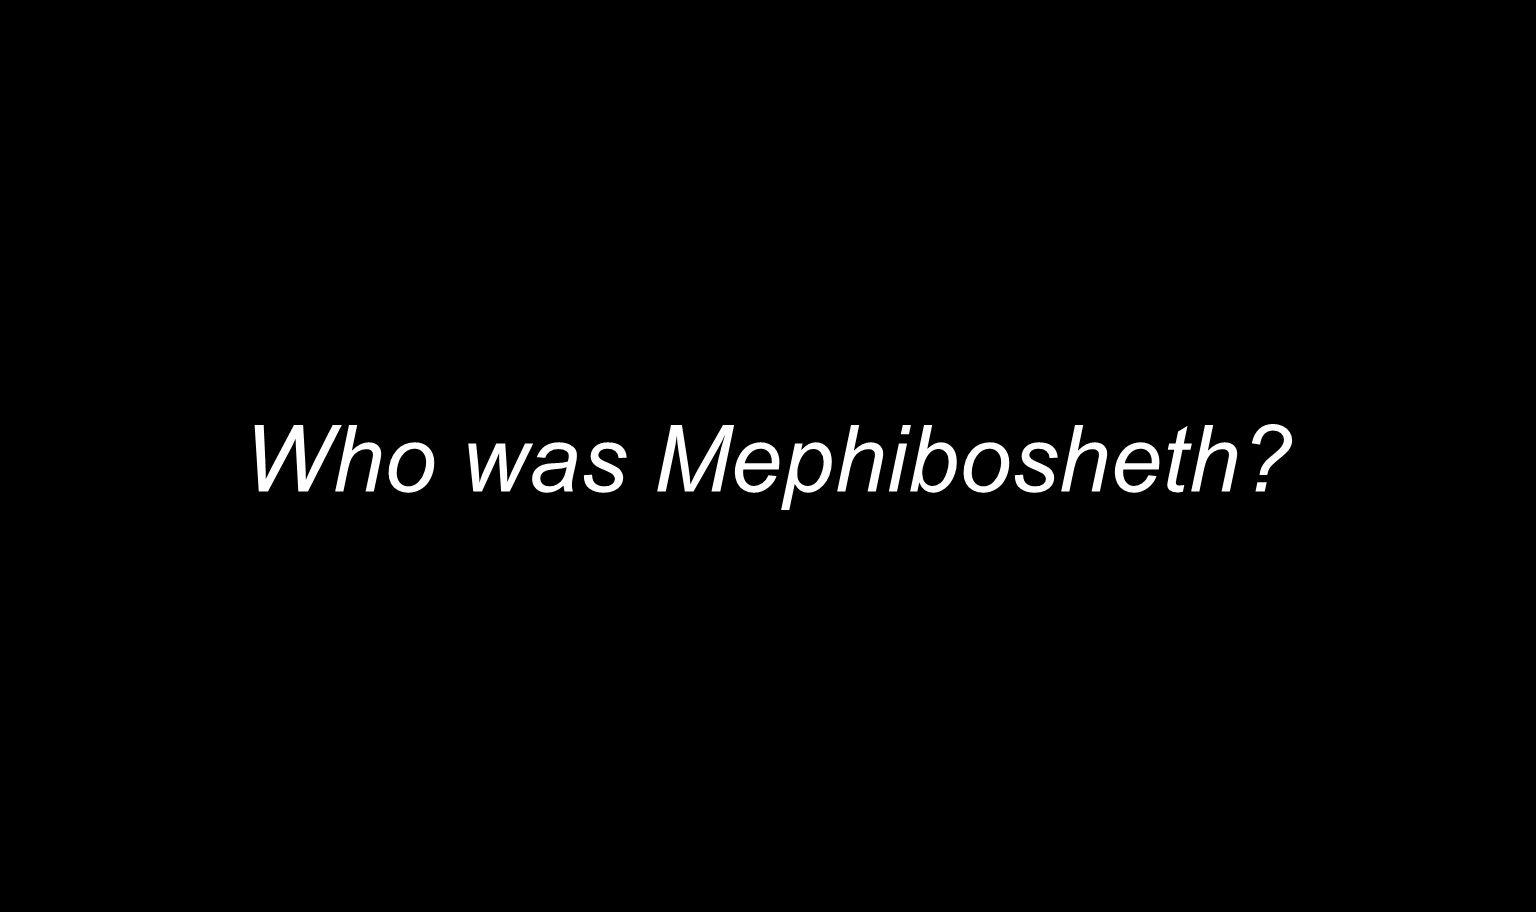 Who was Mephibosheth